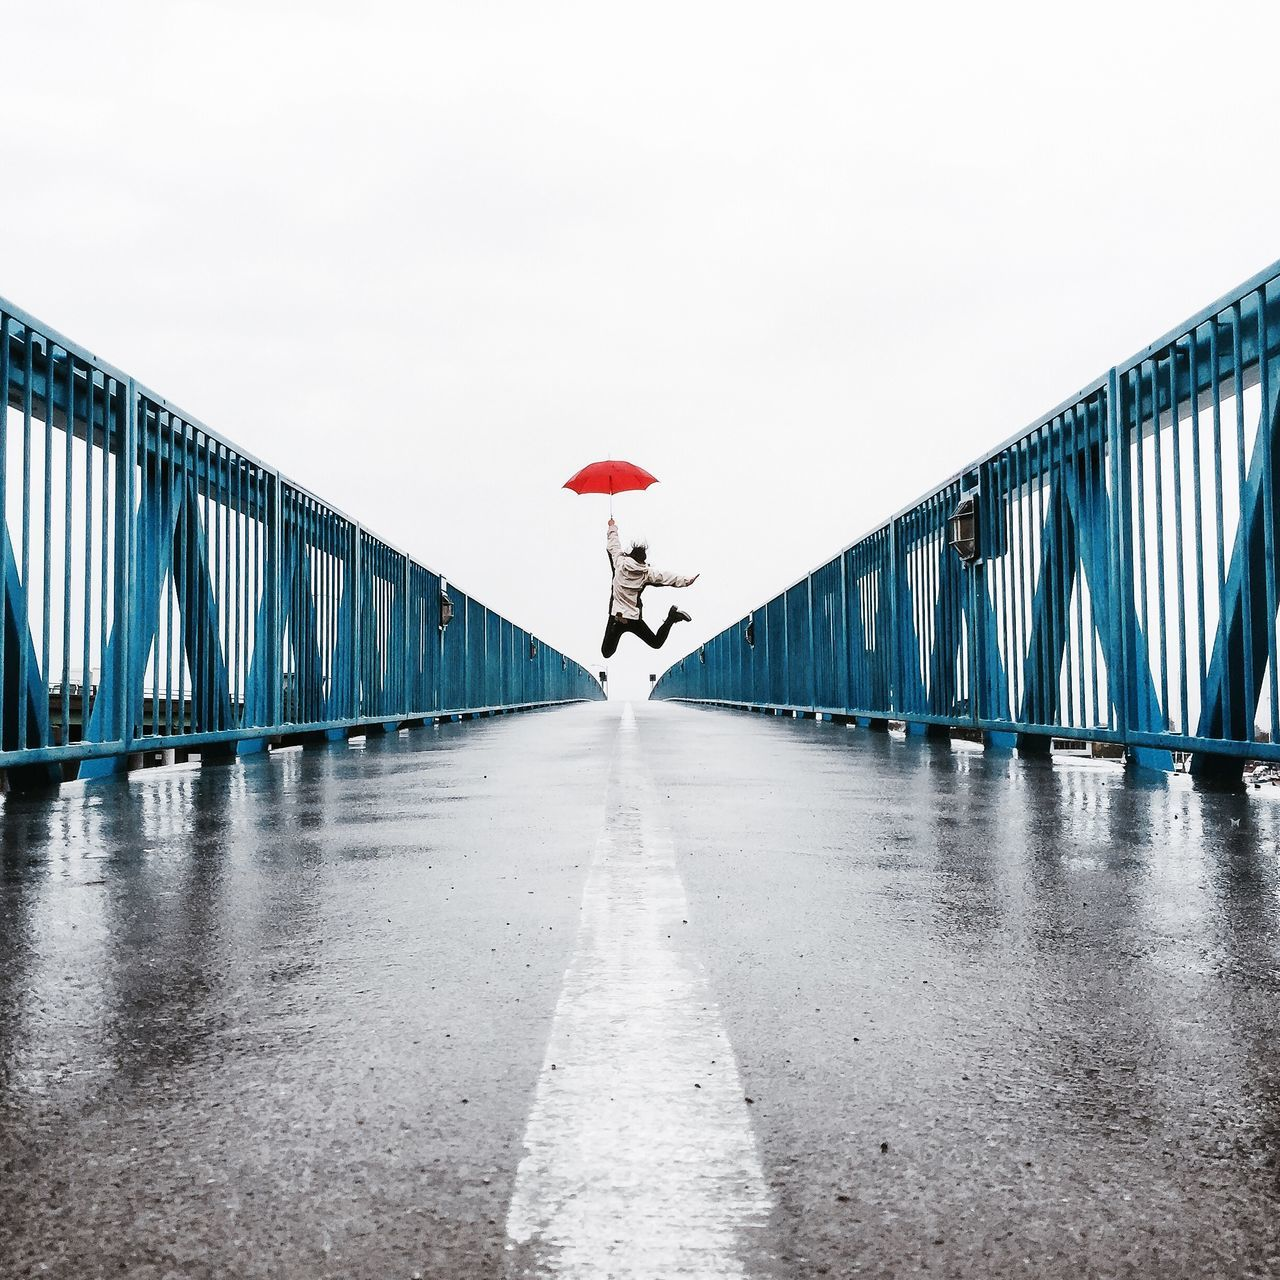 Jumpshot Red Umbrella Rain Bridge Happy Celebrating Jump The Moment - 2015 EyeEm Awards